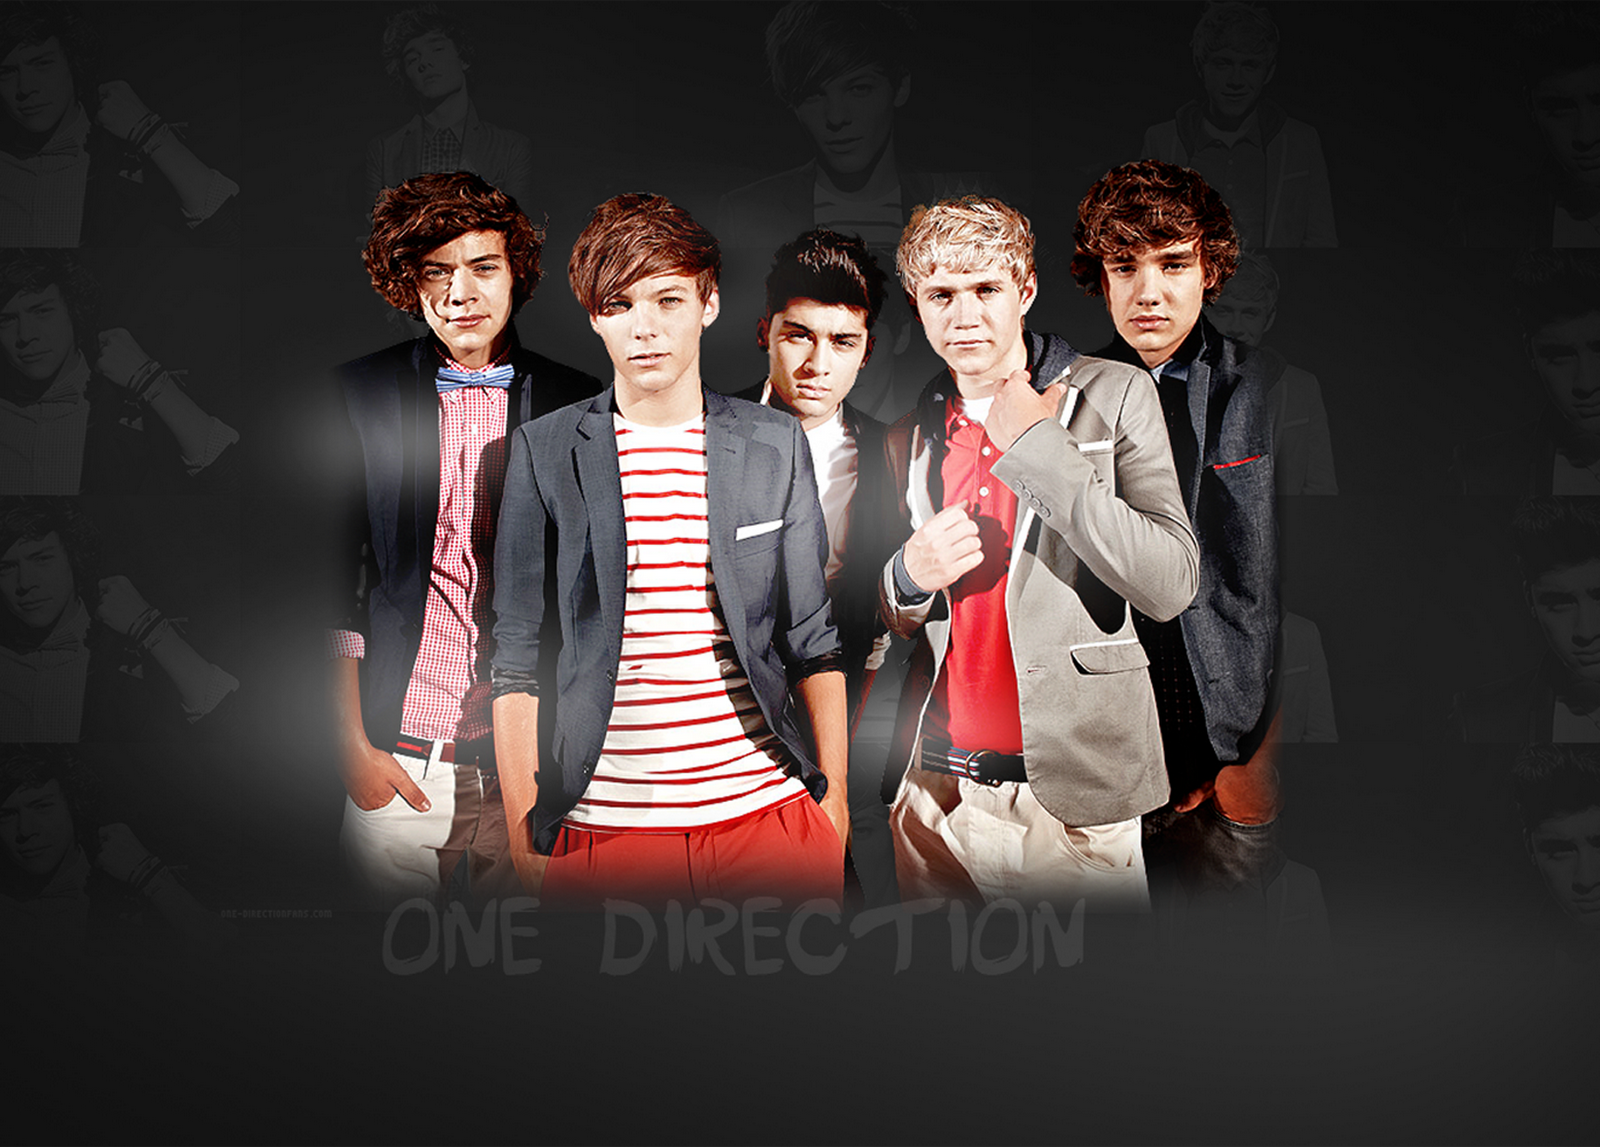 Wallpaper Iphone 5 One Direction One Direction Wallpaper For 1600x1147